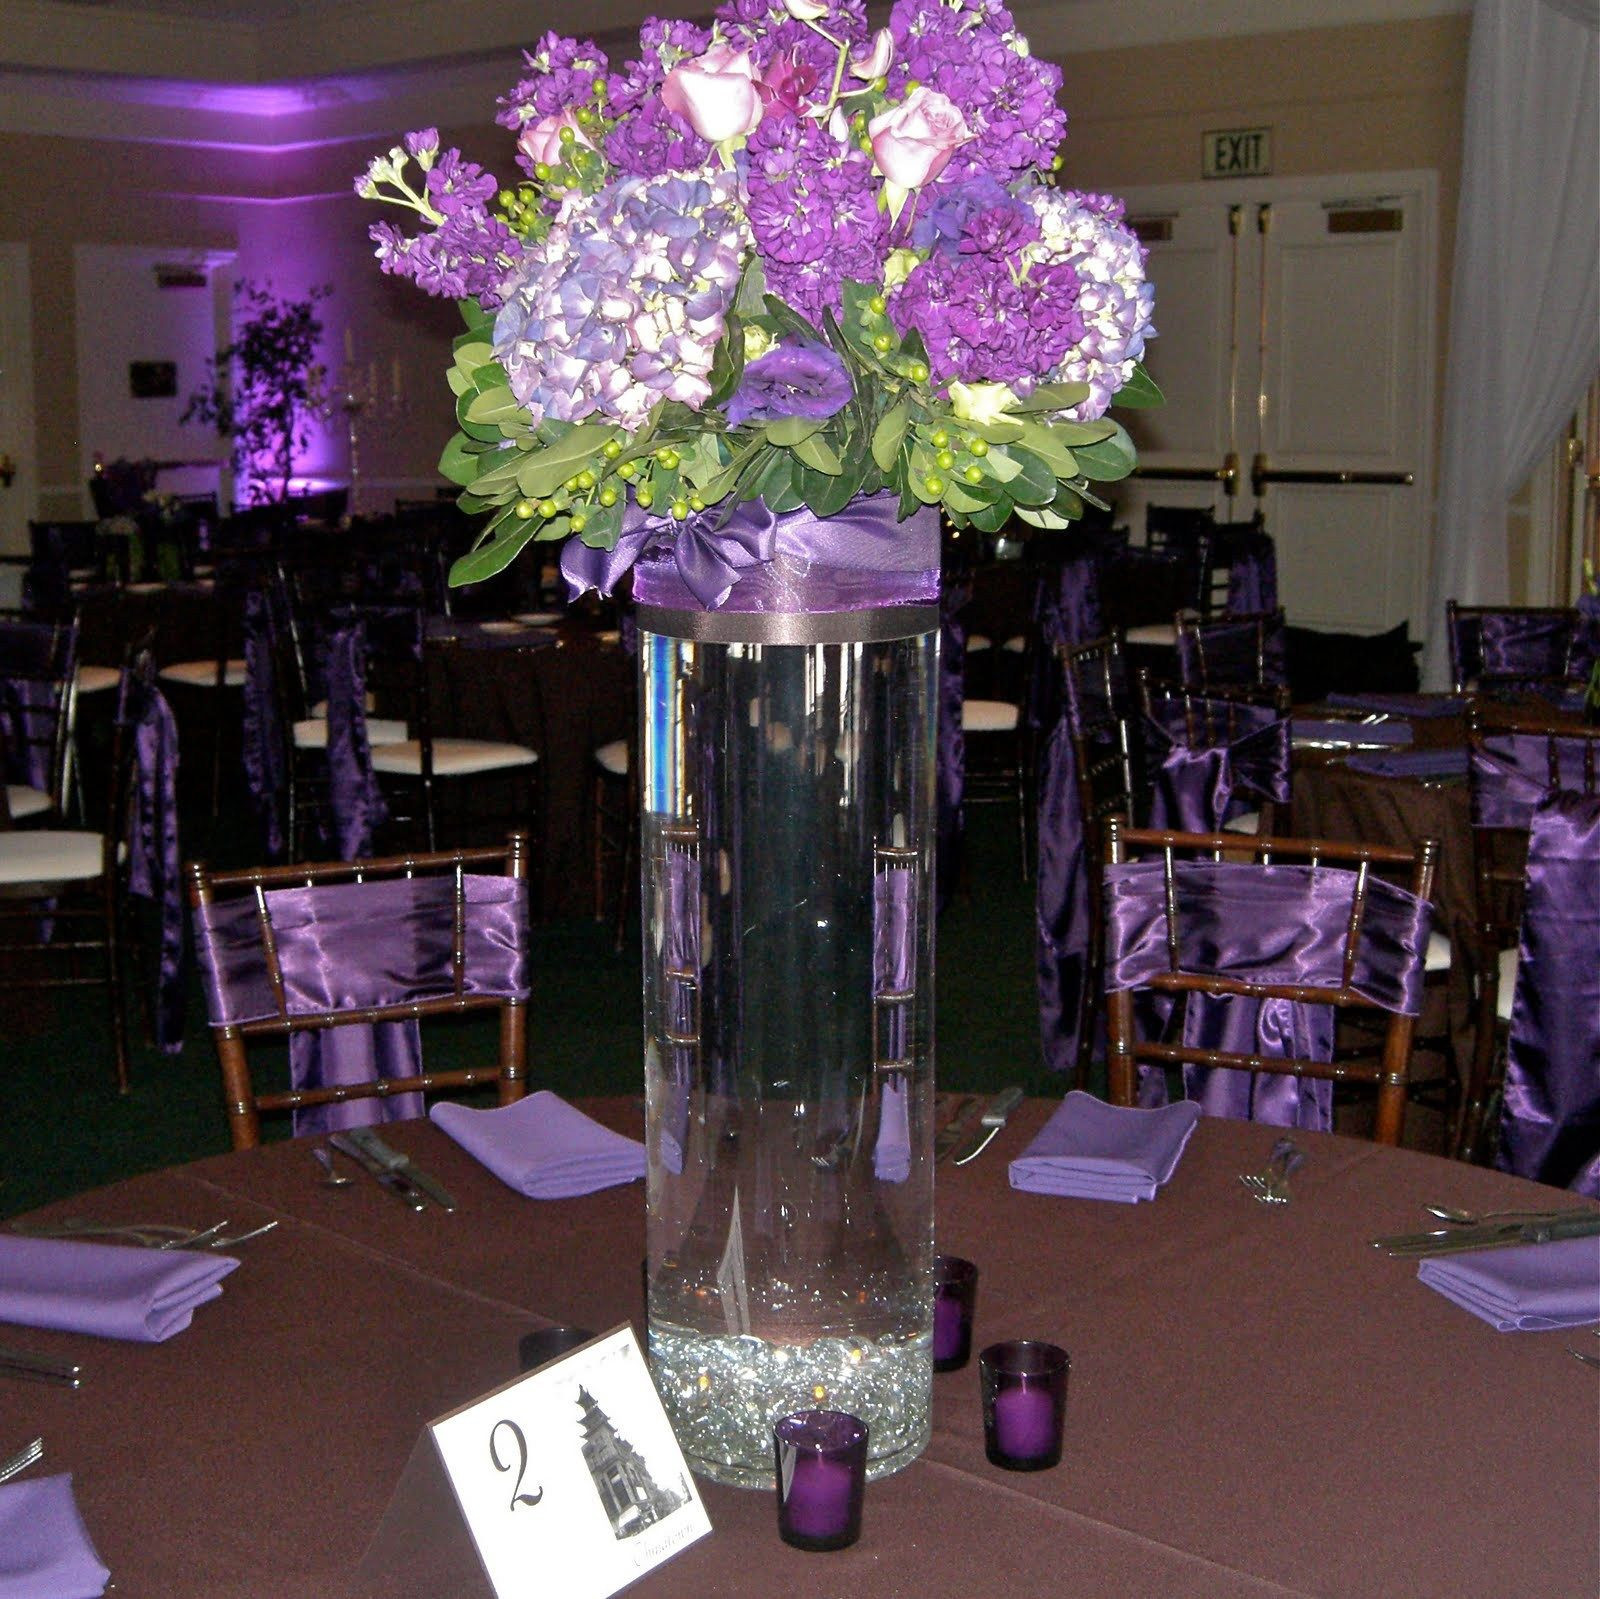 16 inch tall vases of 23 tall cylinder vases the weekly world in bulk glass vases for centerpieces vase and cellar image avorcor